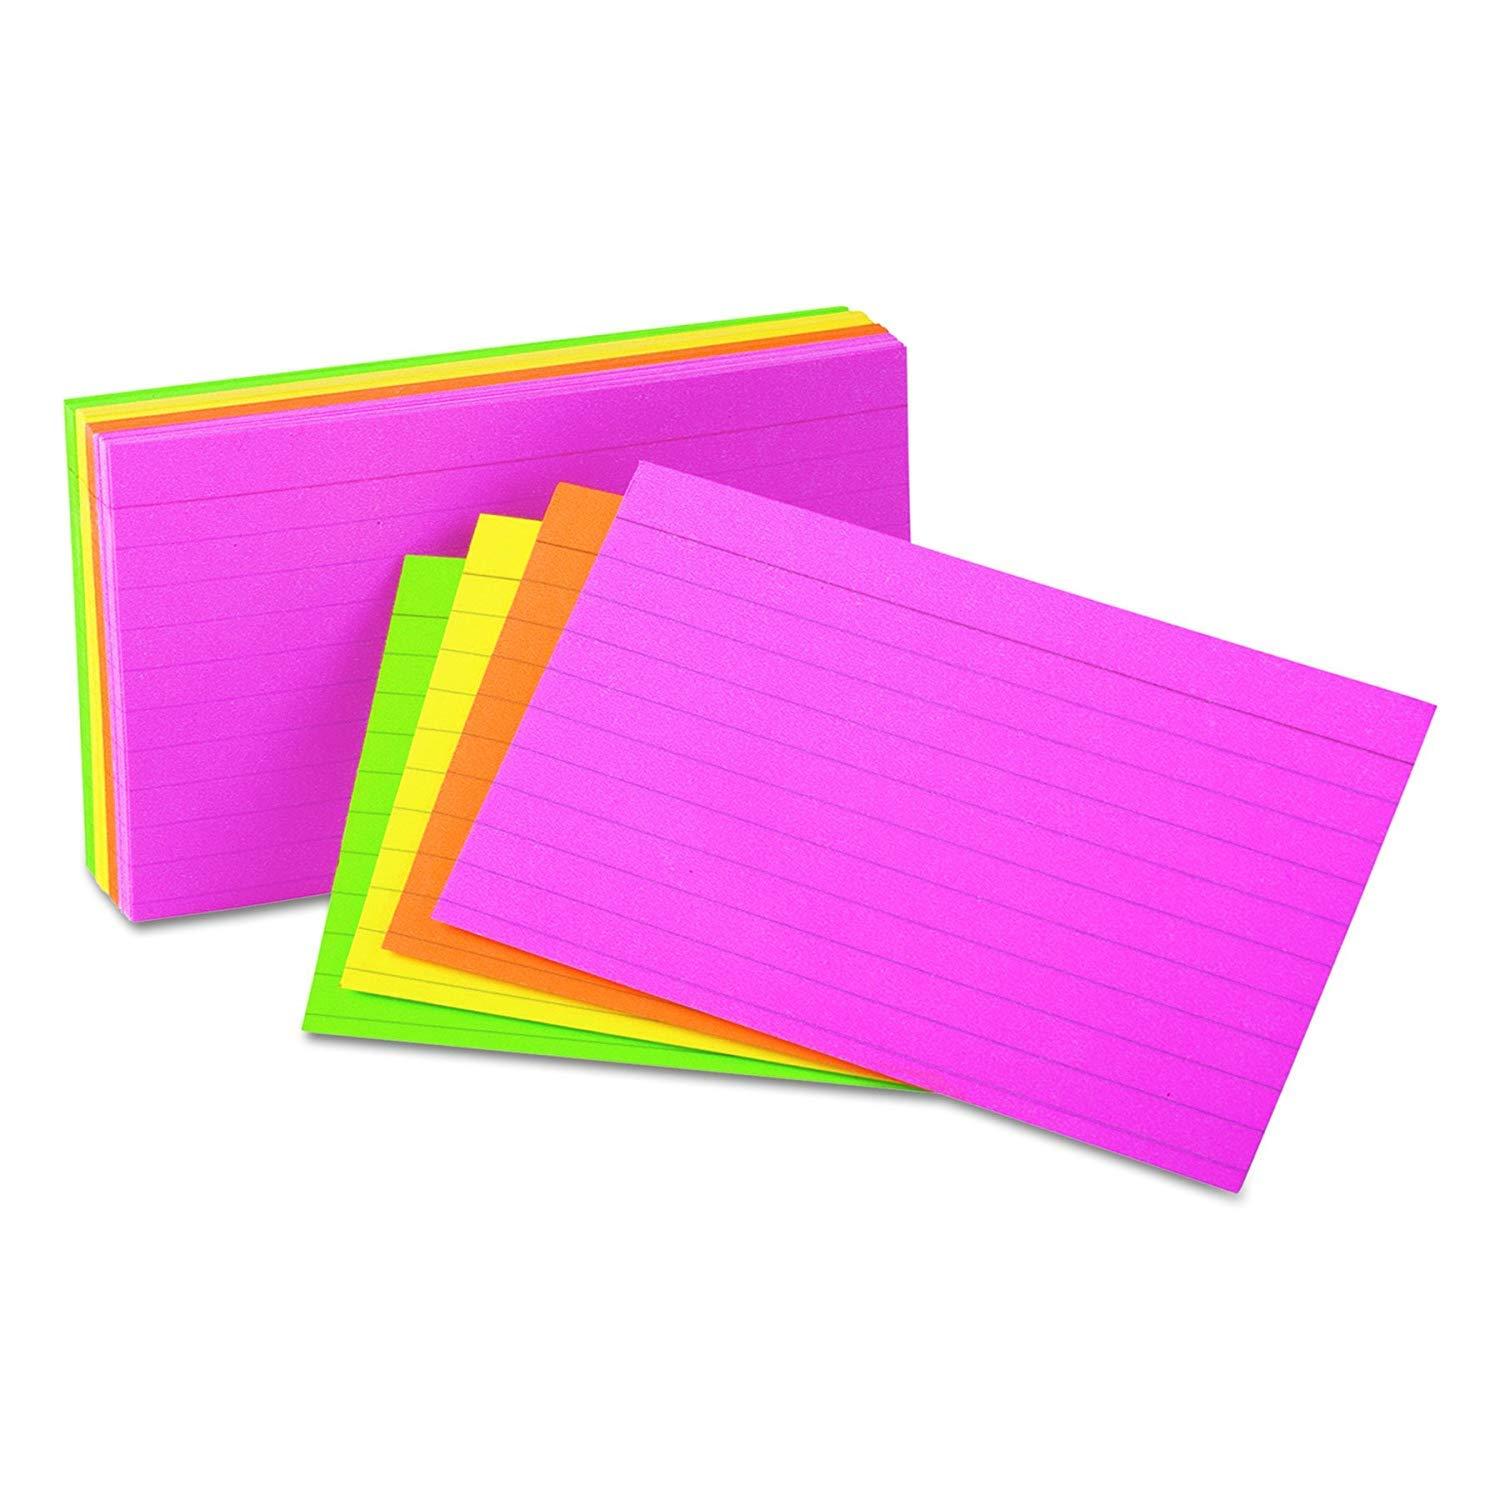 Universal 47257 Ruled Neon Glow Index Cards, 5 x 8, Assorted (Pack of 100), 32 PACK